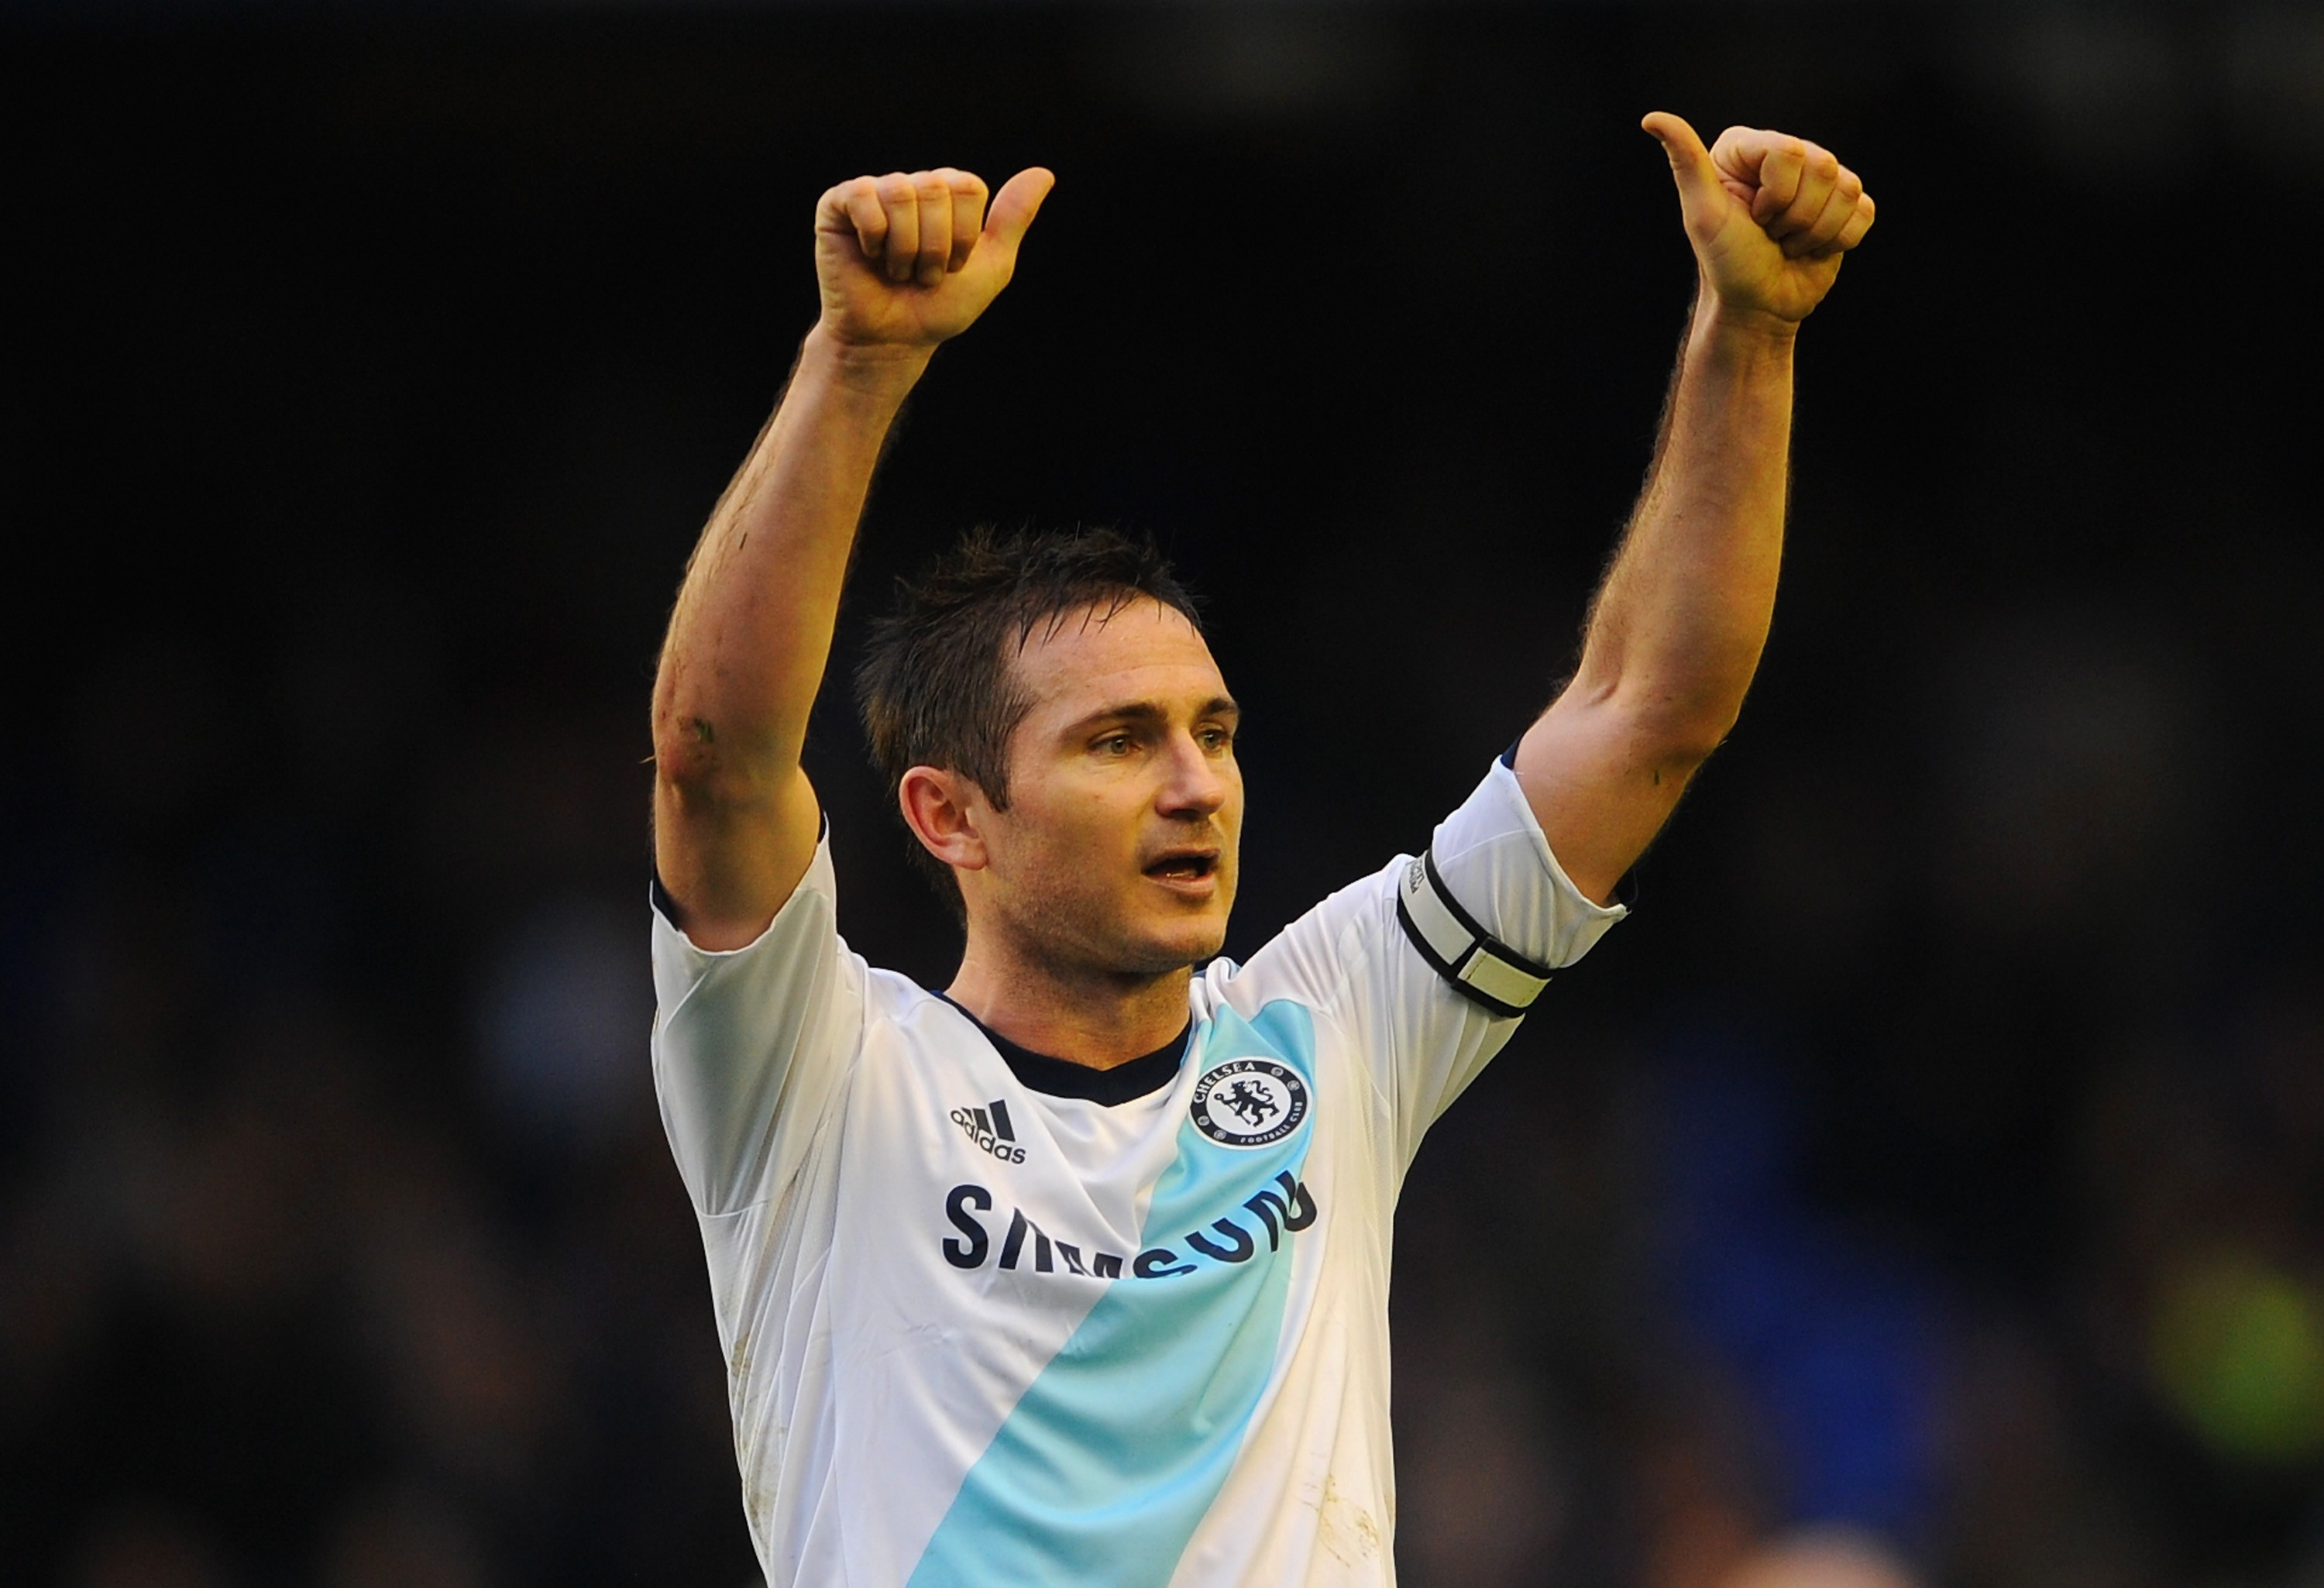 The reason Frank Lampard's pending Chelsea move hasn't happened yet